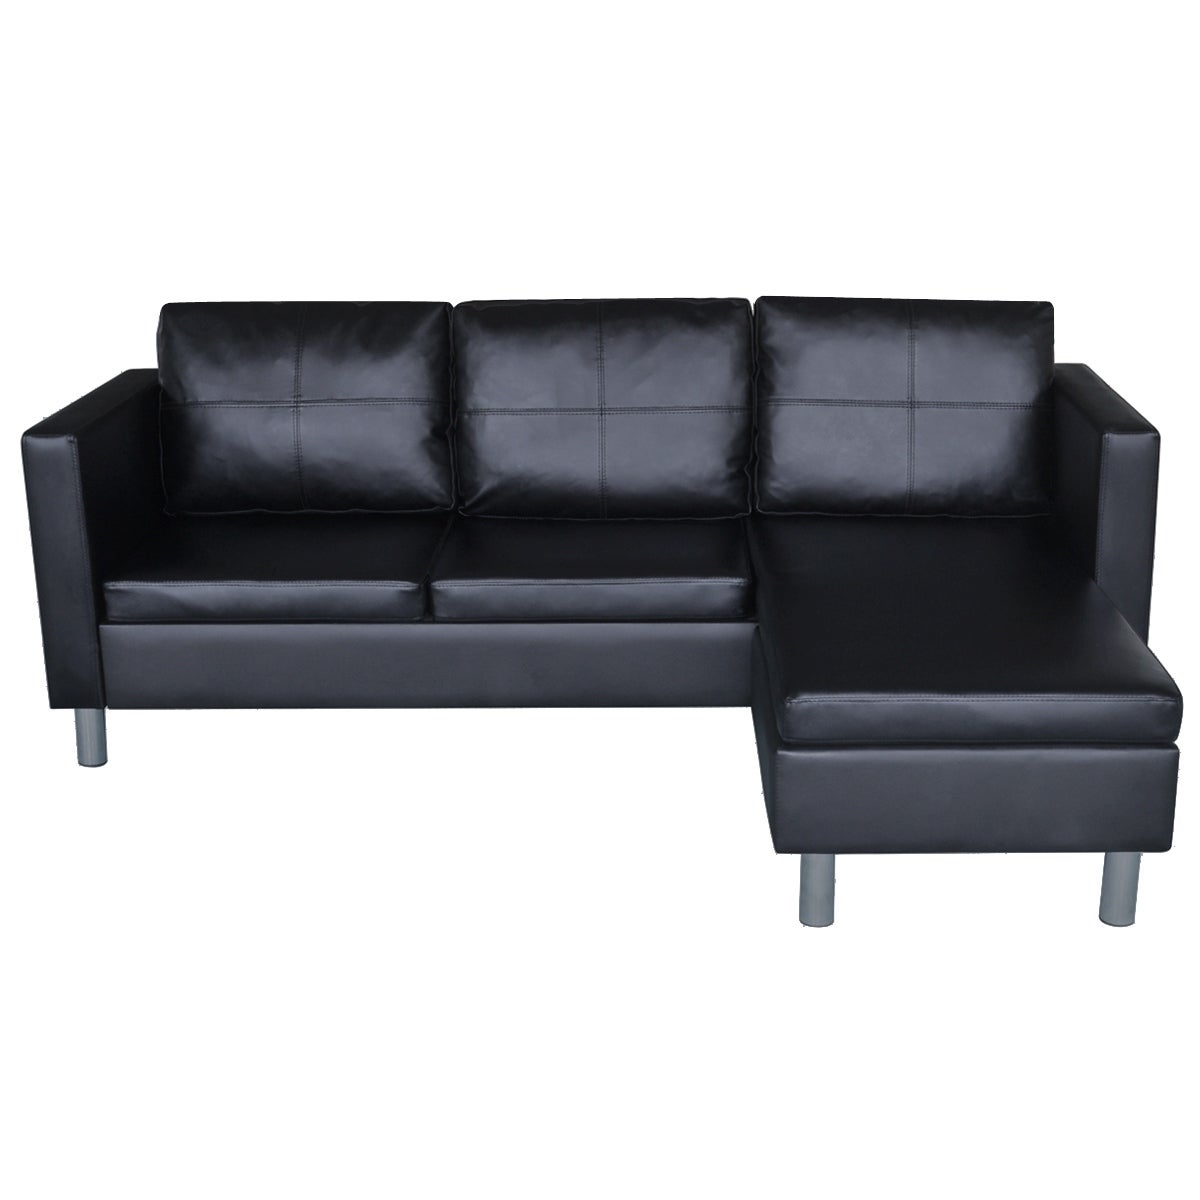 Vidaxl 3 Seater L Shaped Artificial Leather Sectional Sofa Black Free Shipping Today 18505012